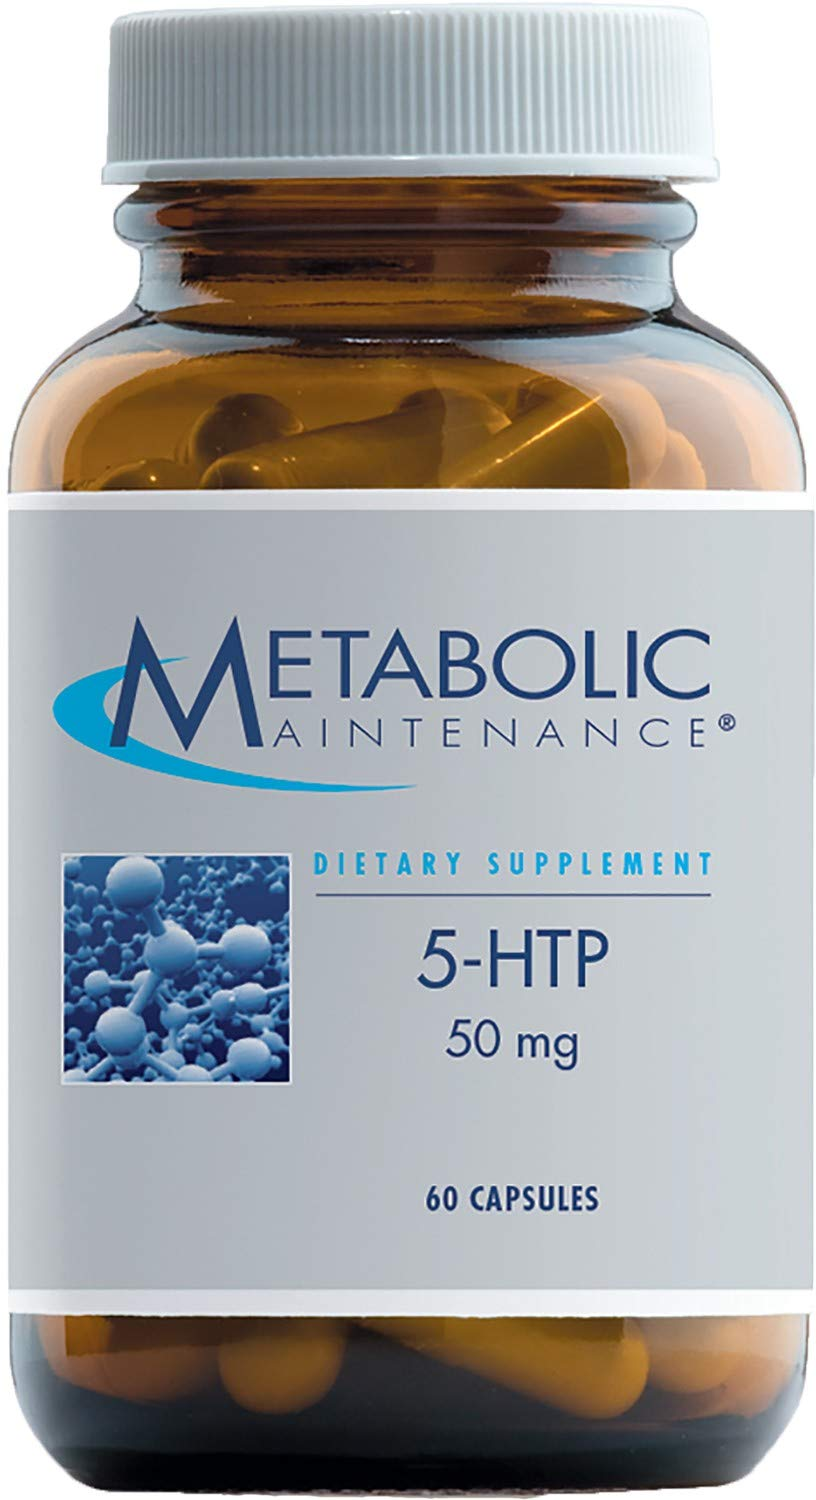 Metabolic Maintenance 5-HTP - 50 Milligrams with Vitamin B6 (P-5-P) for Mood + Sleep Support (60 Capsules)